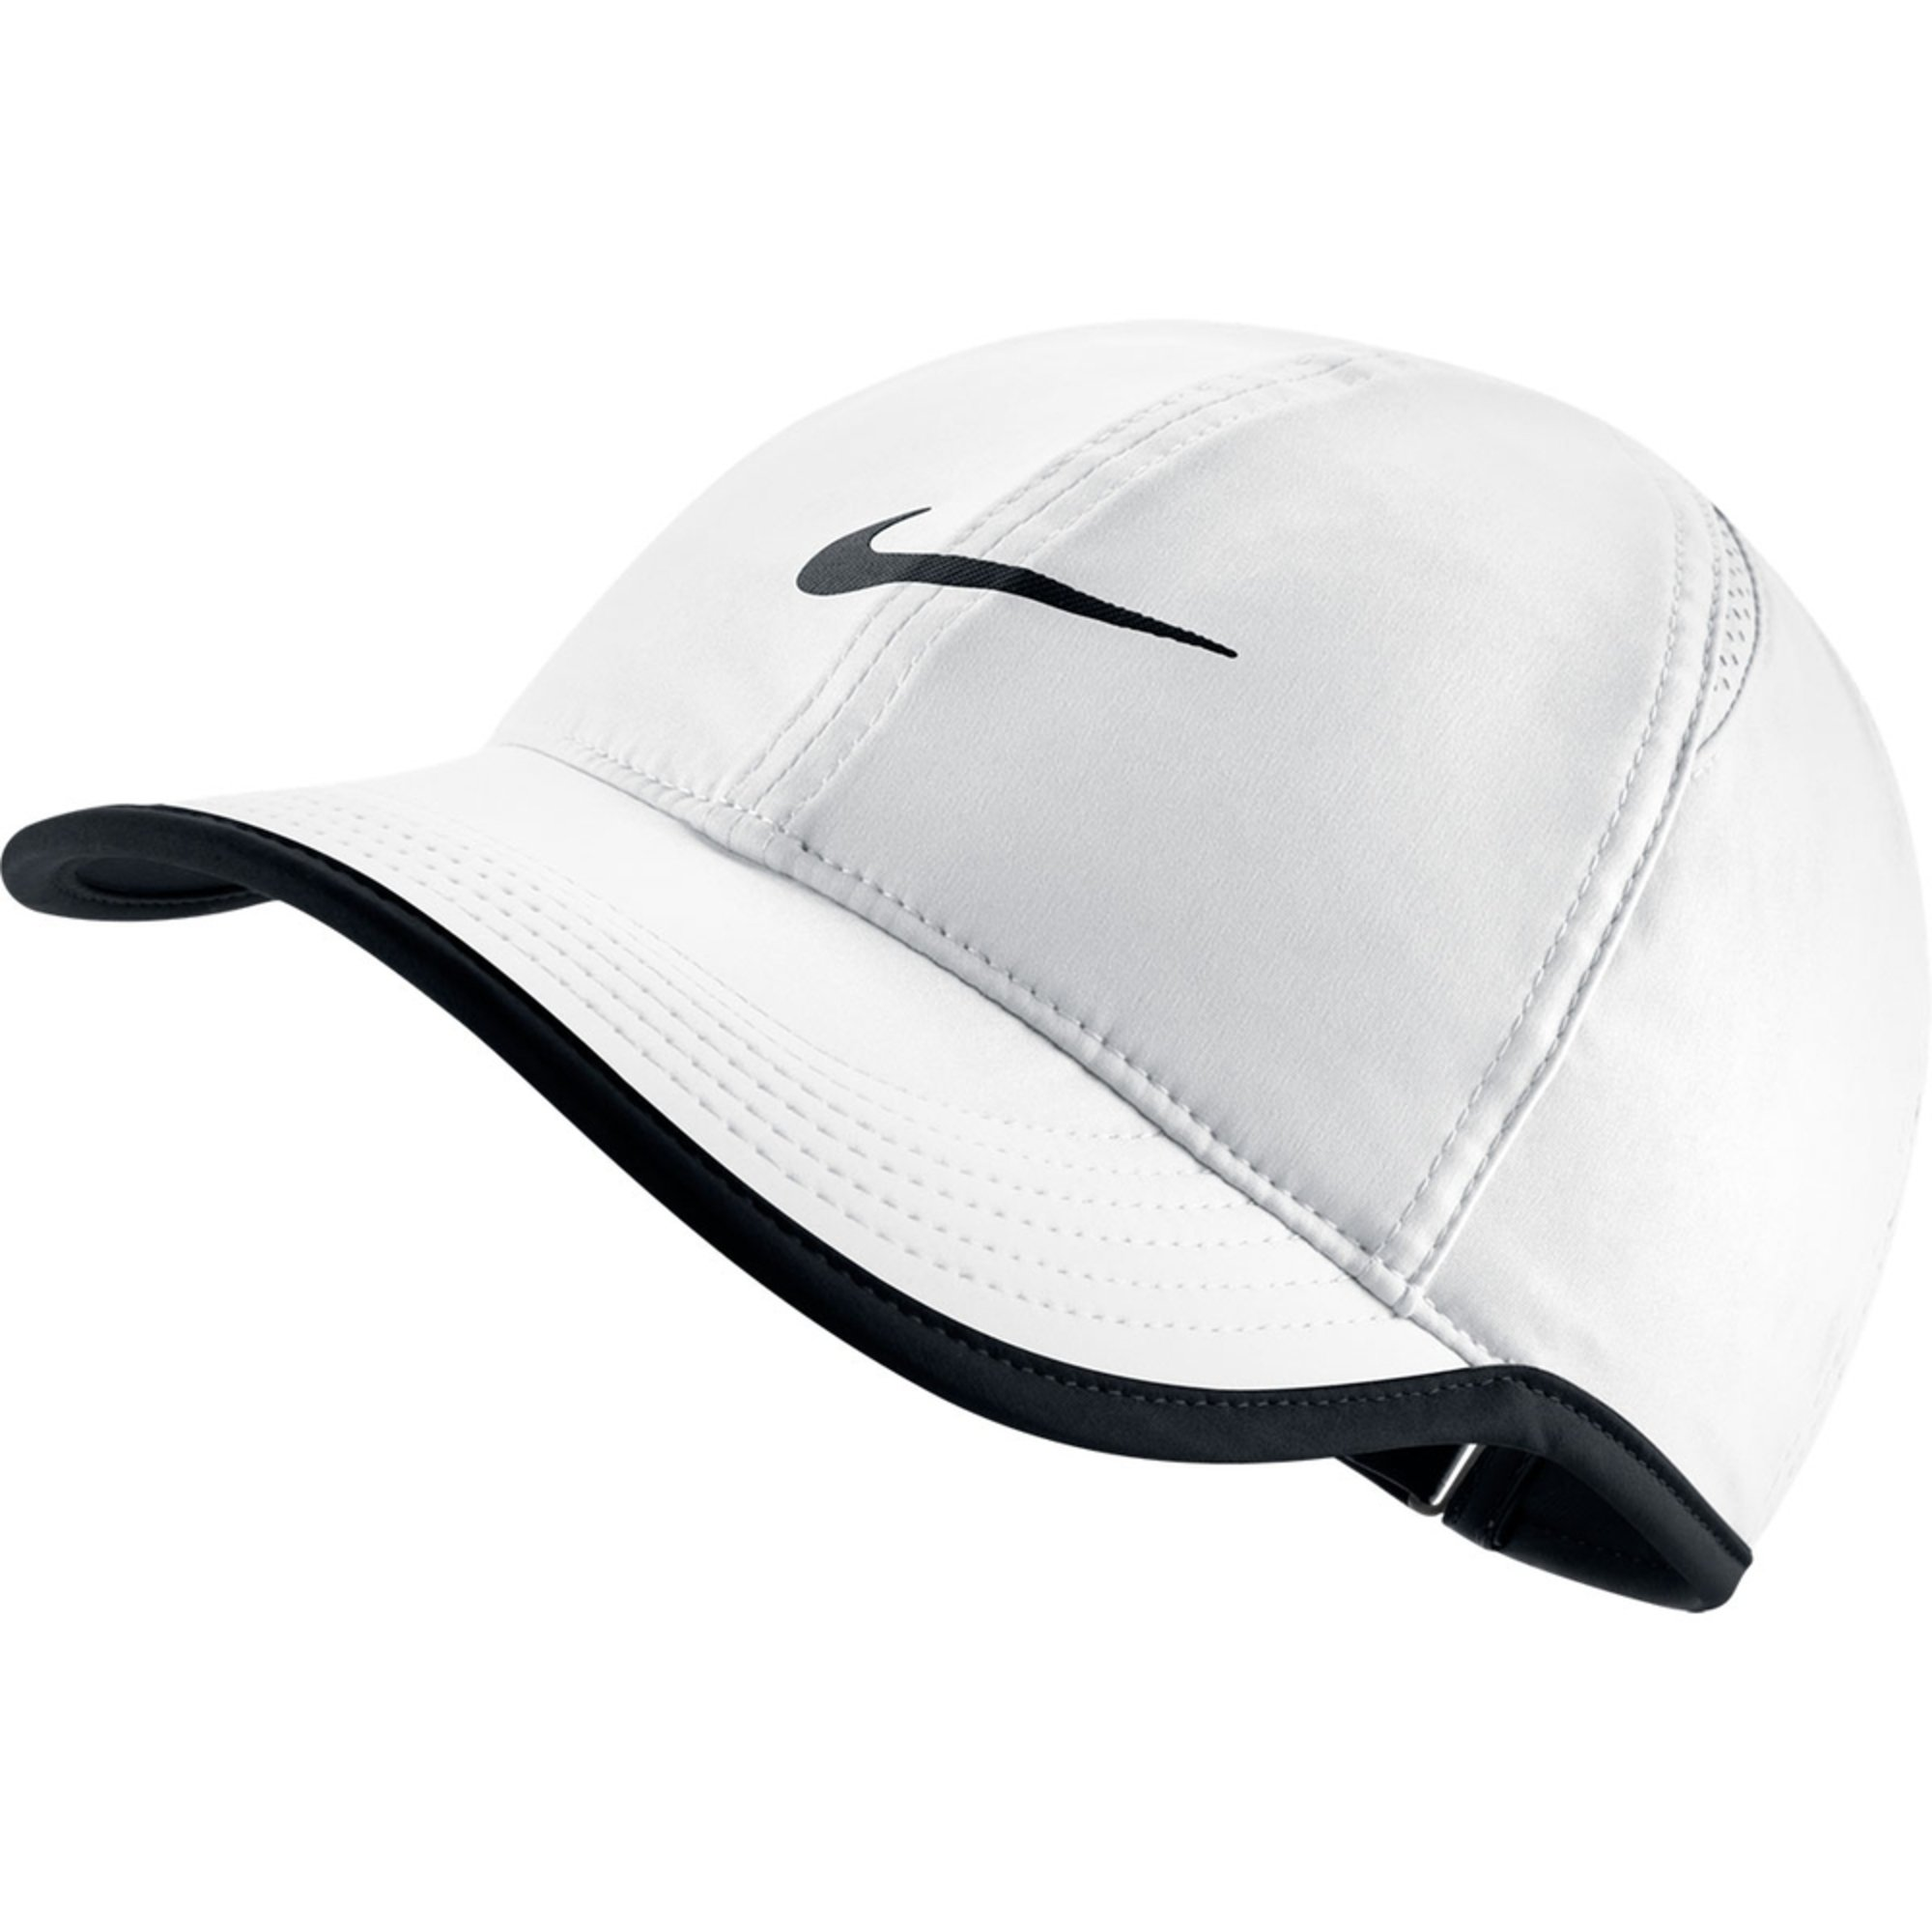 21319e69 Nike Women's Feather Cap Tennis White | Active Hats & Beanies ...